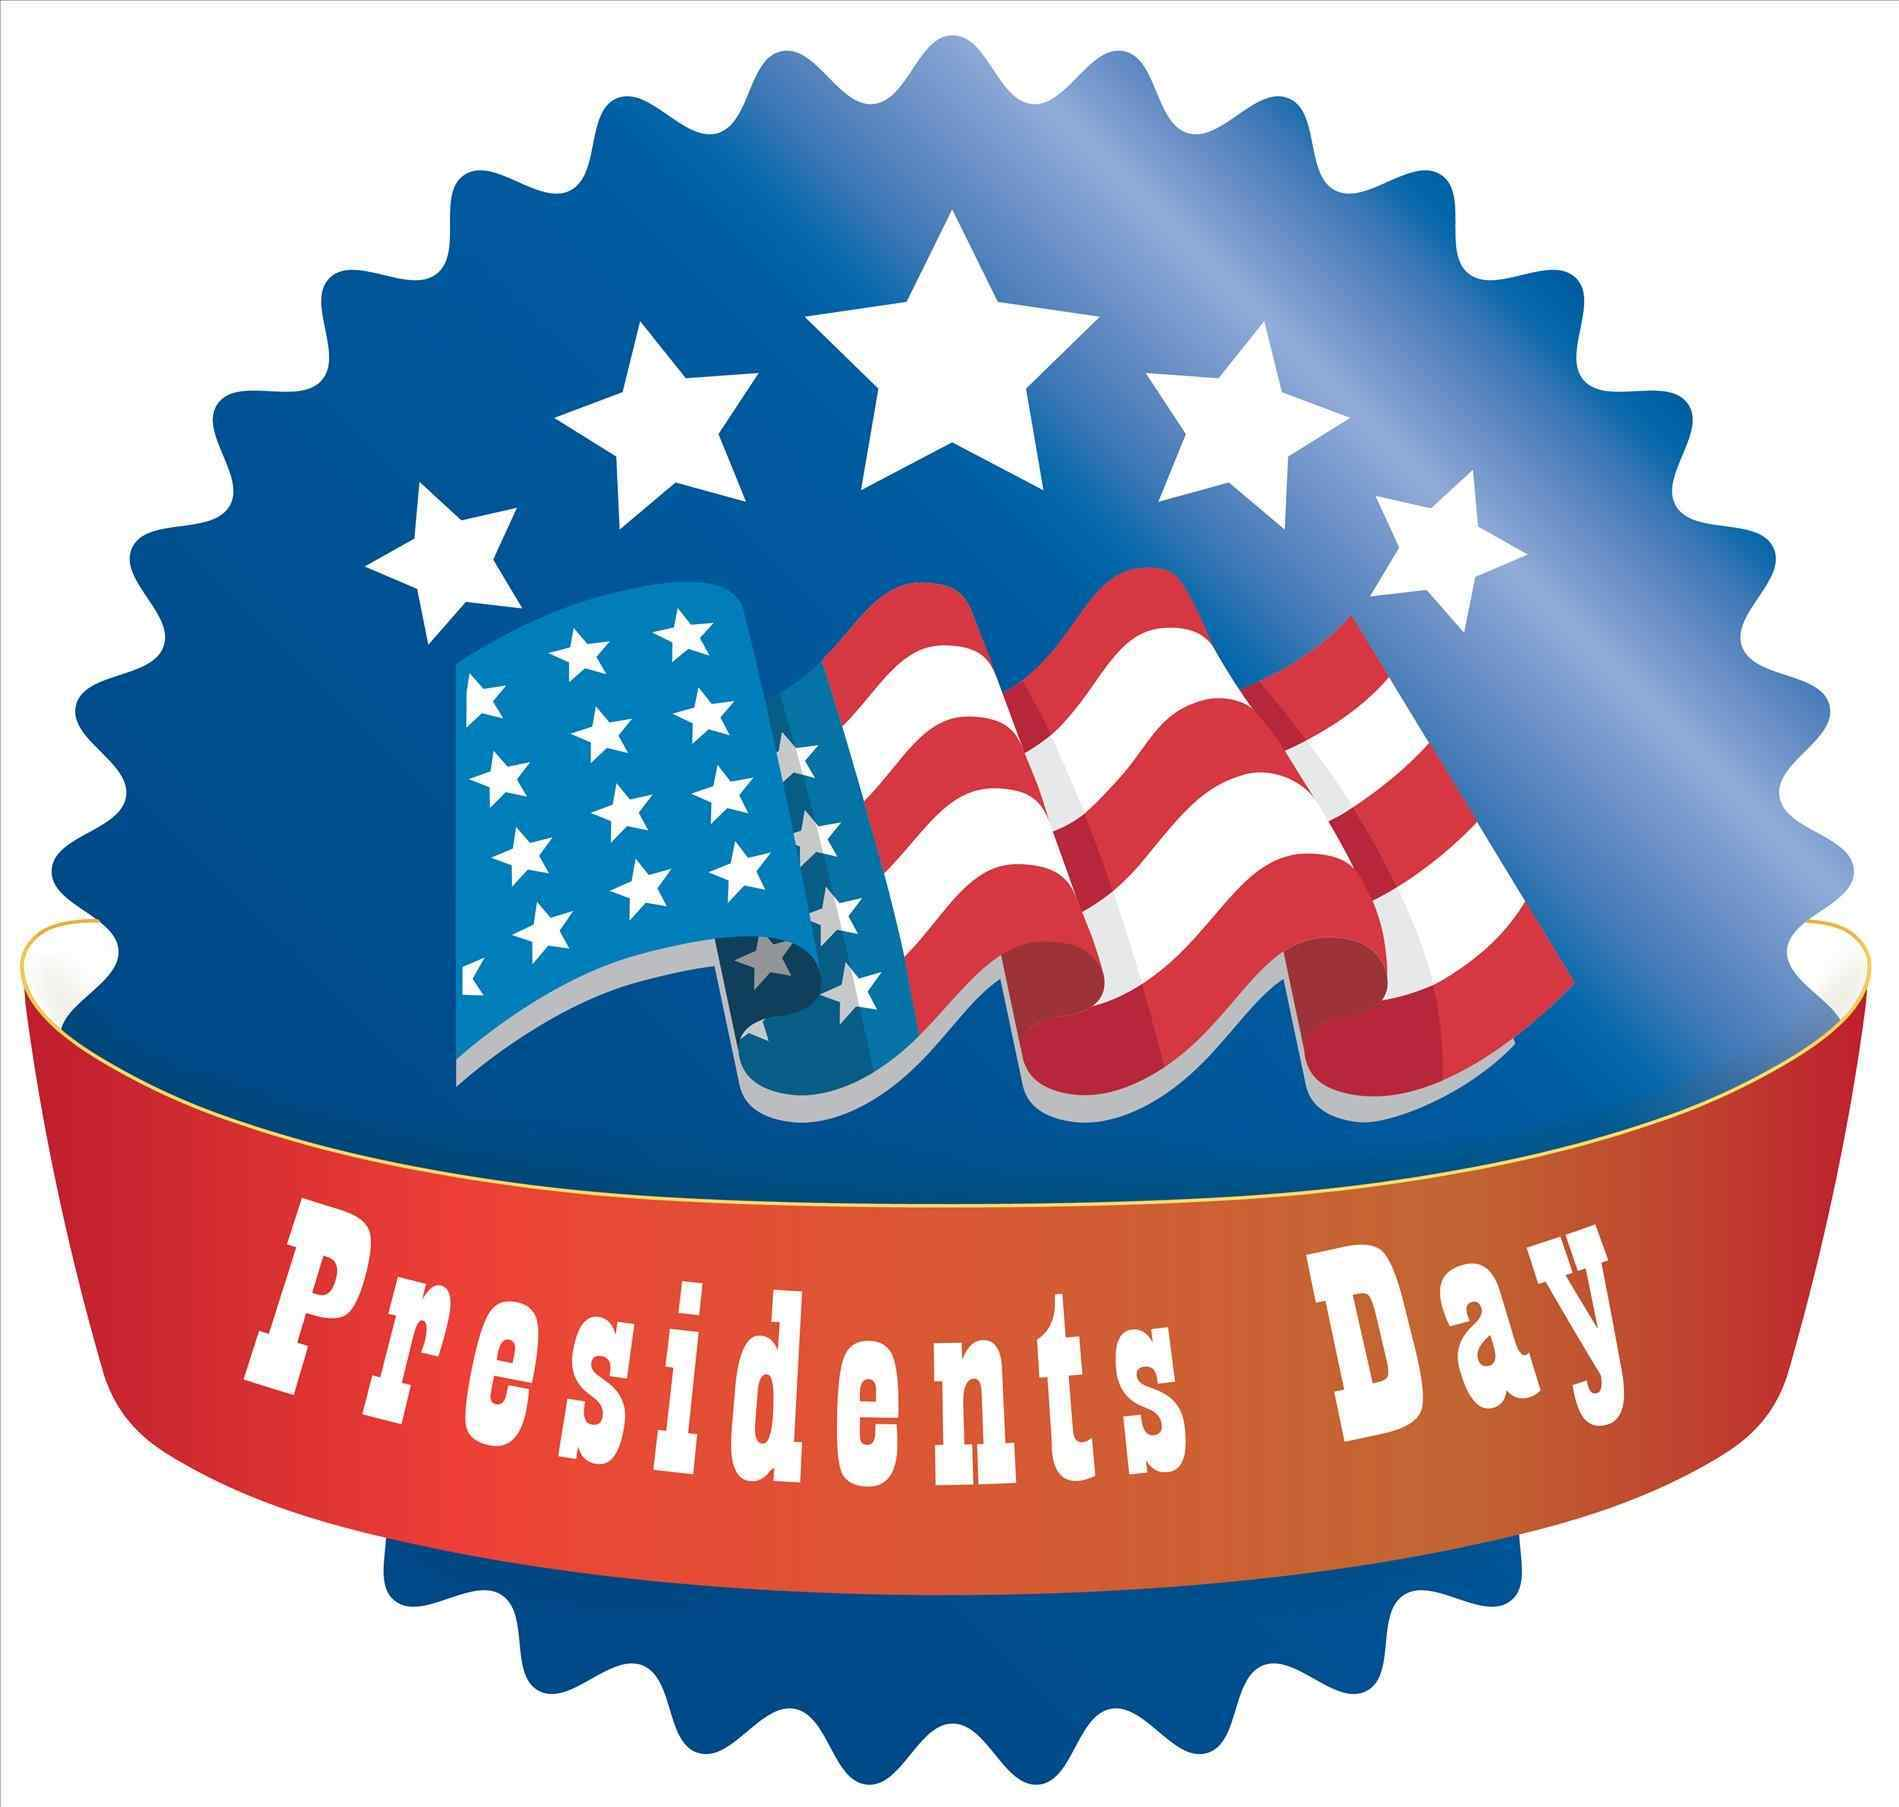 abraham clipart at getdrawings com free for personal use abraham rh getdrawings com  free presidents day clip art images